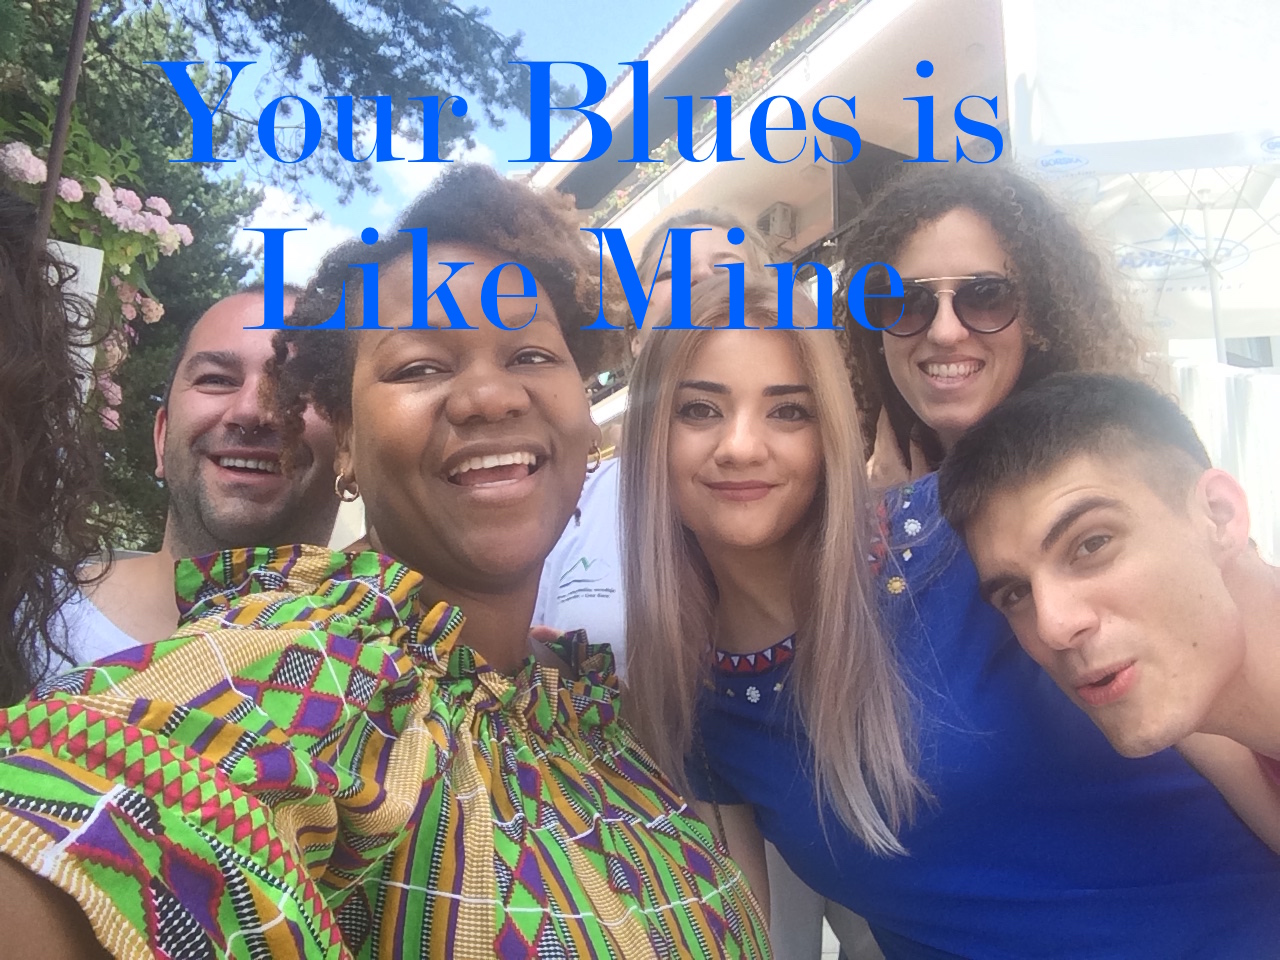 Your Blues is Like Mine